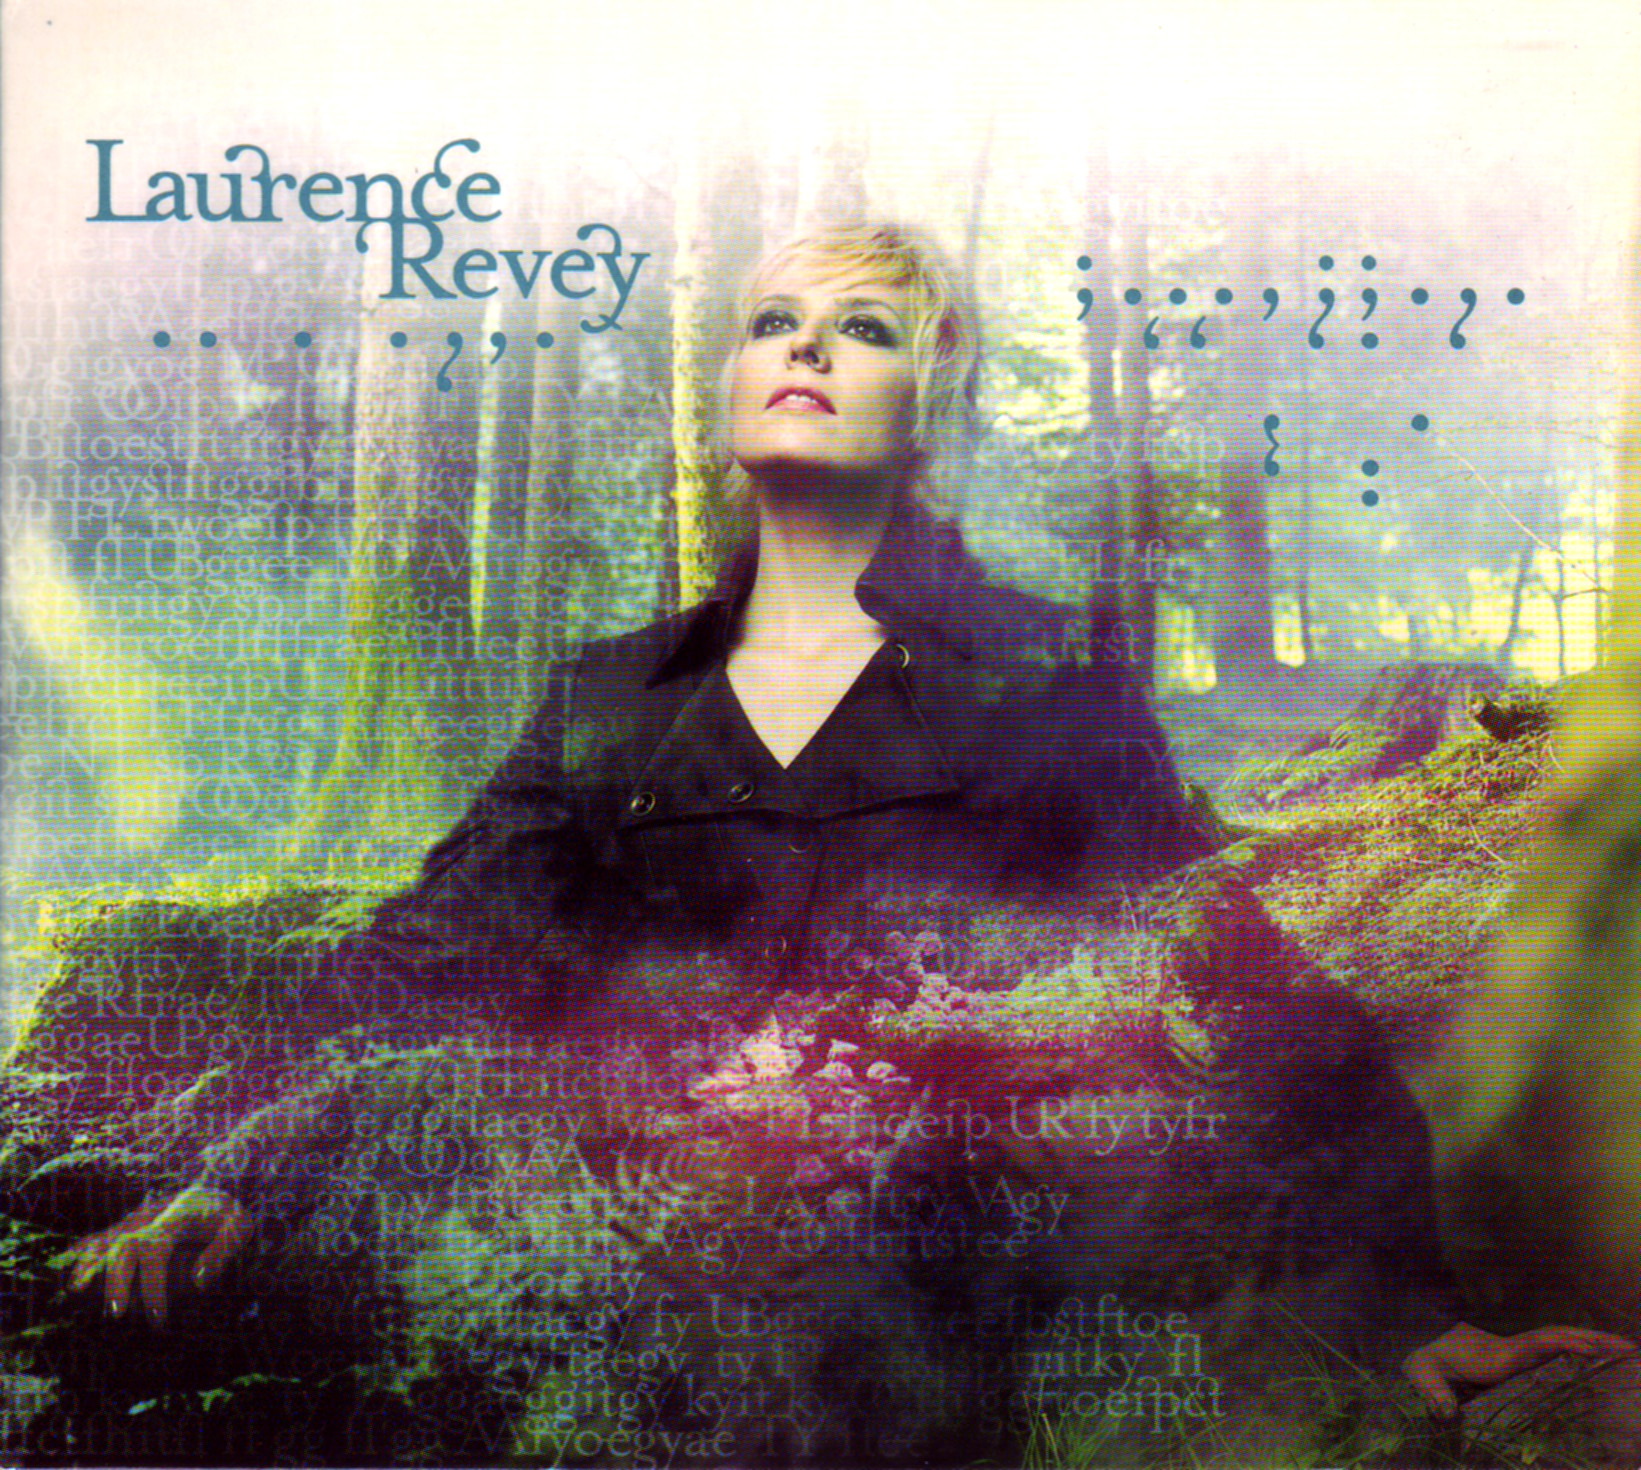 Laurence Revey